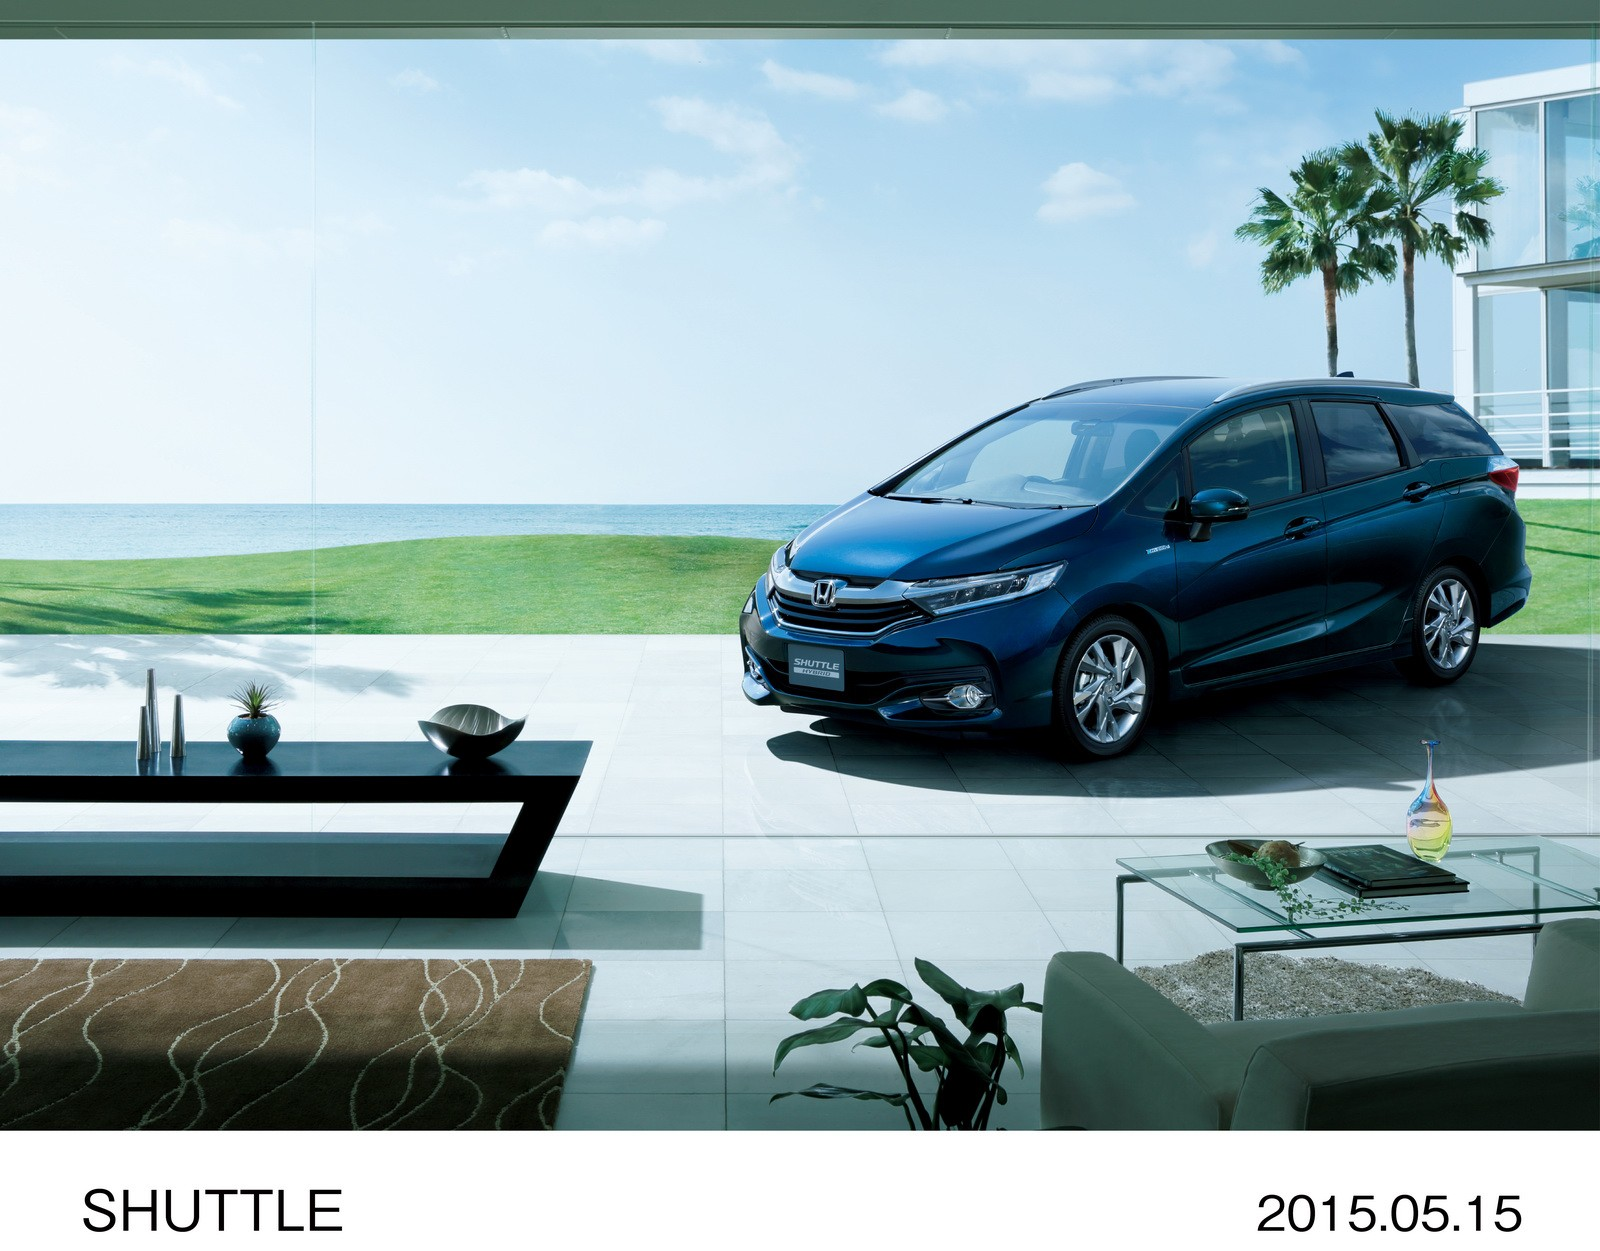 2015 Honda Shuttle Sales Have Kicked-Off in Japan - autoevolution